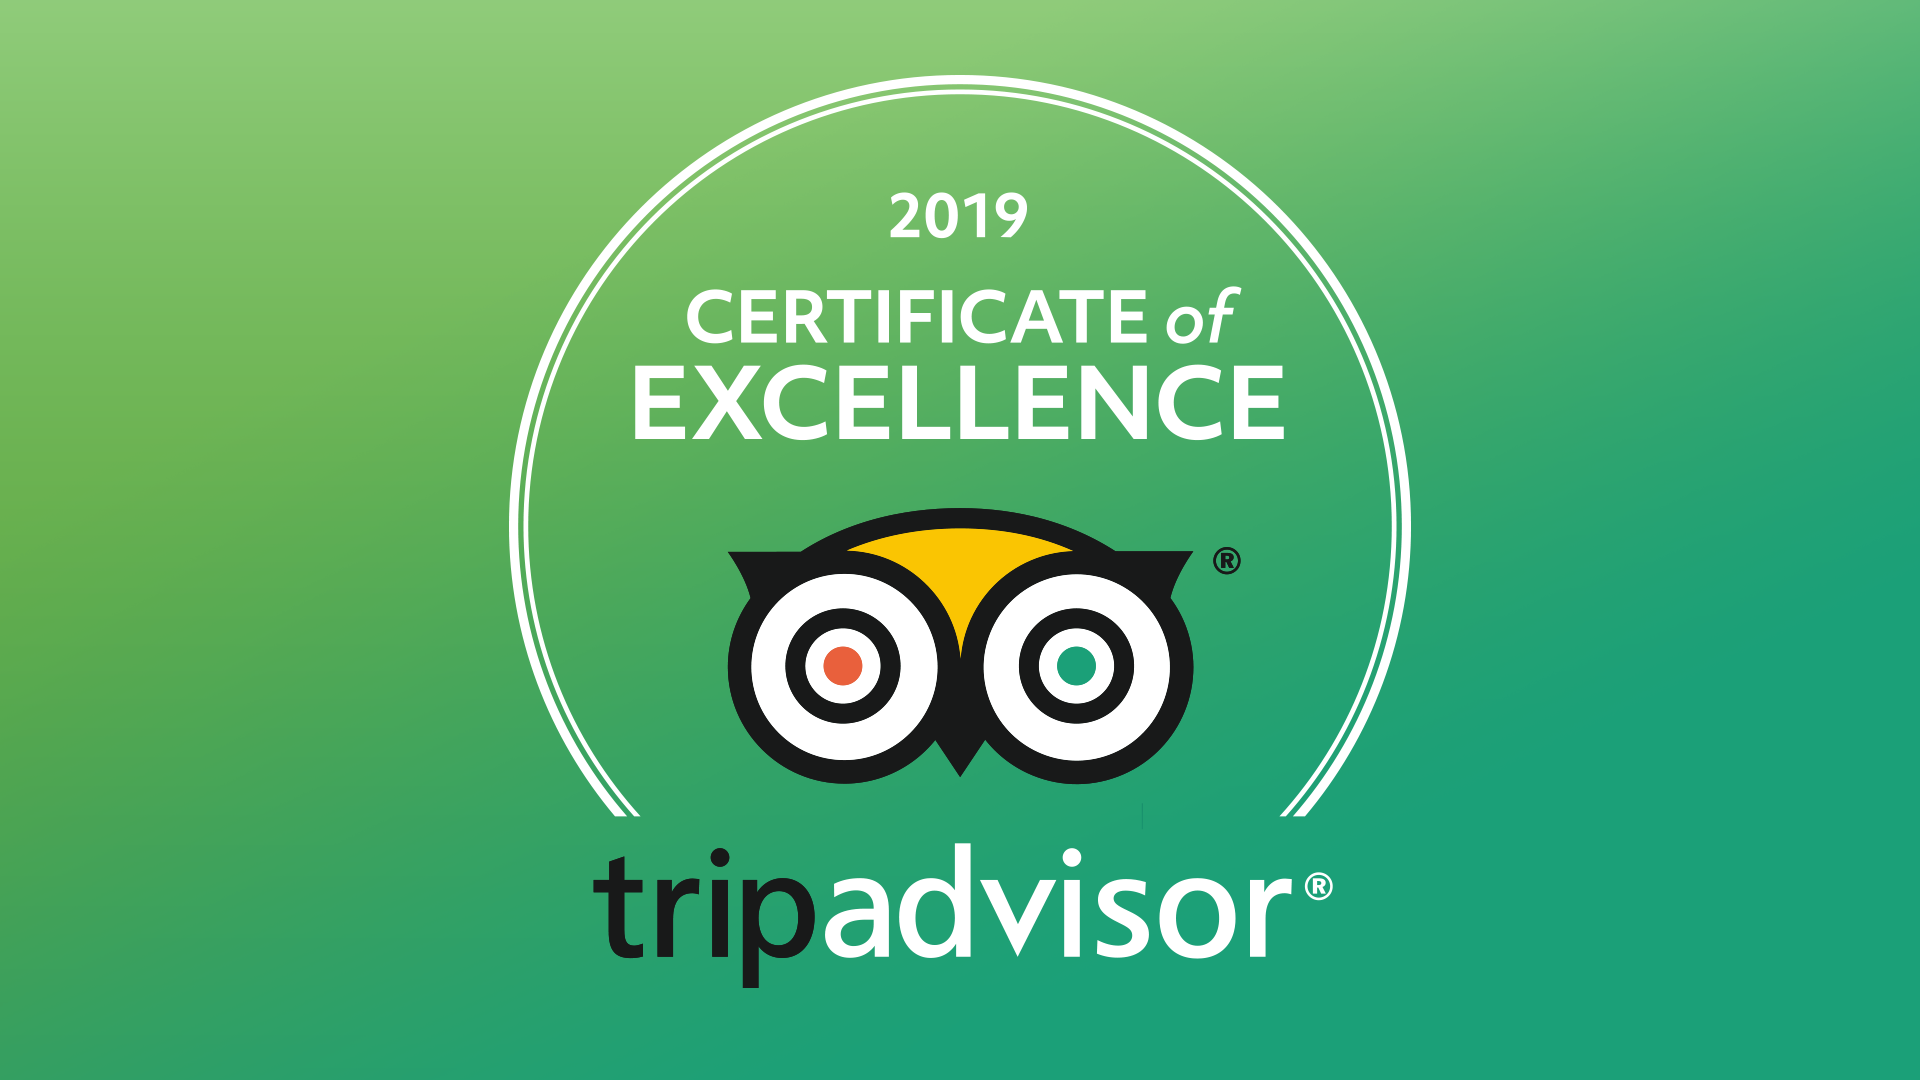 Another TripAdvisor 'Certificate of Excellence' for The Park Hotel